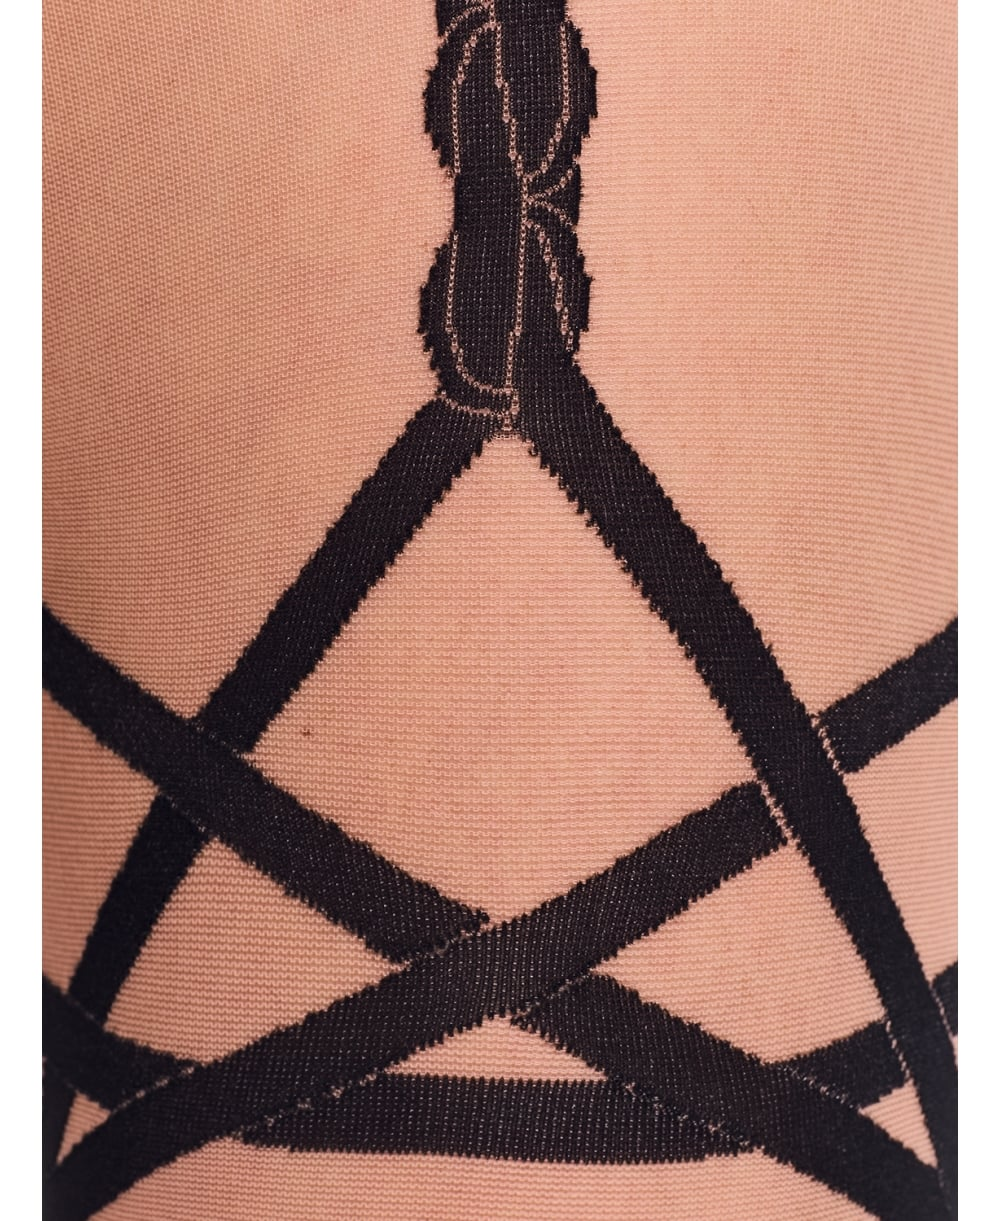 7000eb4ac Wolford Katy Suspender Tights - Tights from luxury-legs.com UK